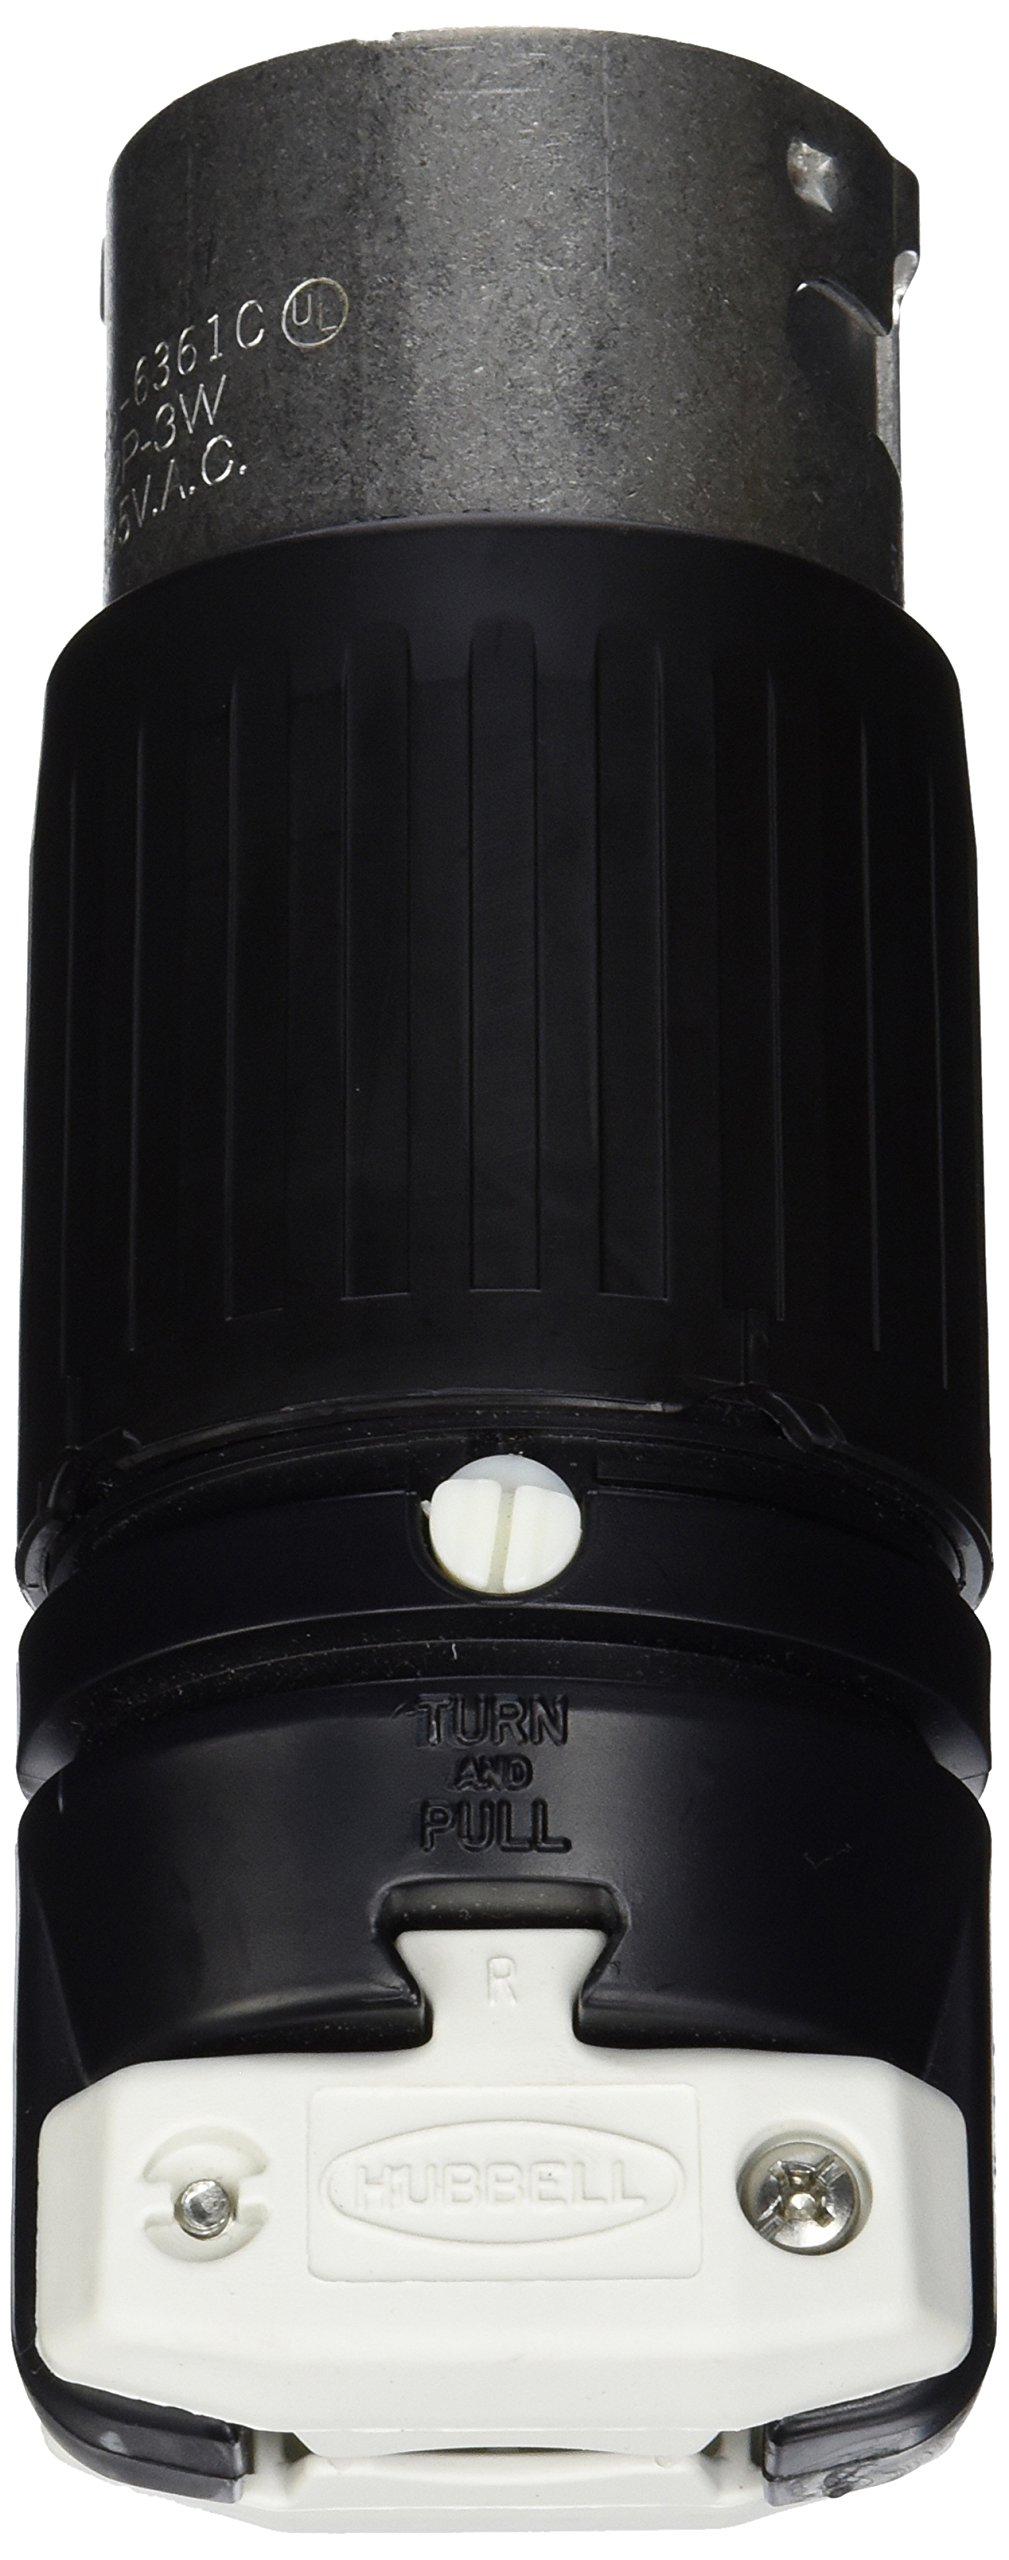 Hubbell CS6361C Locking Plug, 50 amp, 125V, 2 Pole and 3 Wire